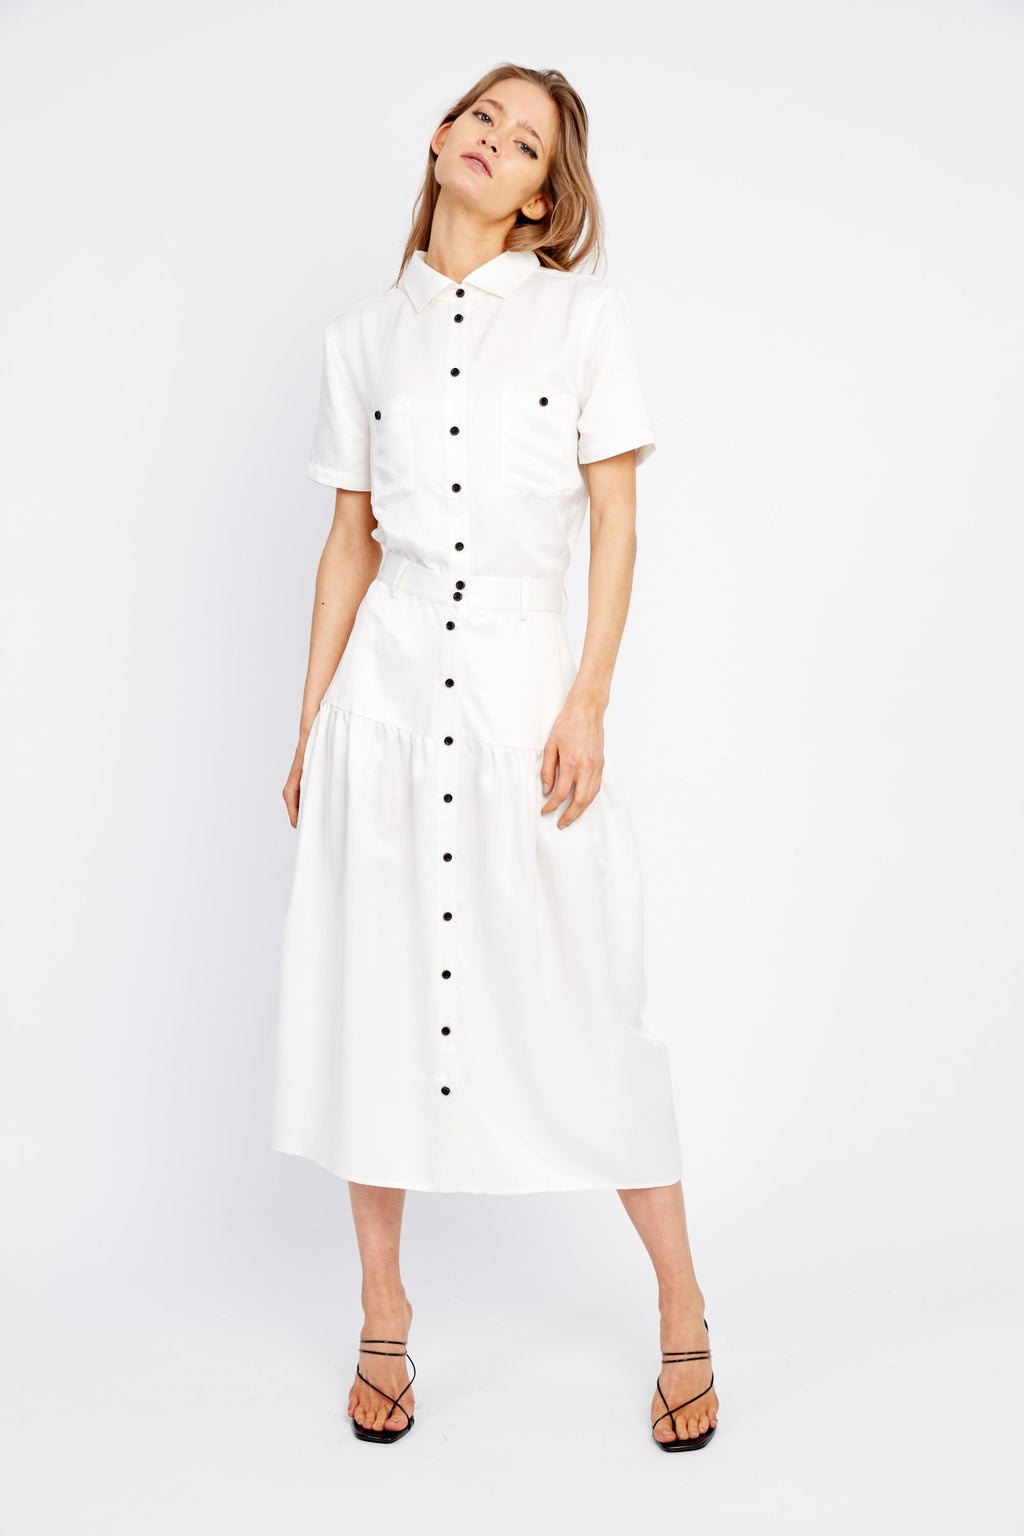 Third Form Vice Versa Midi Skirt - Off White